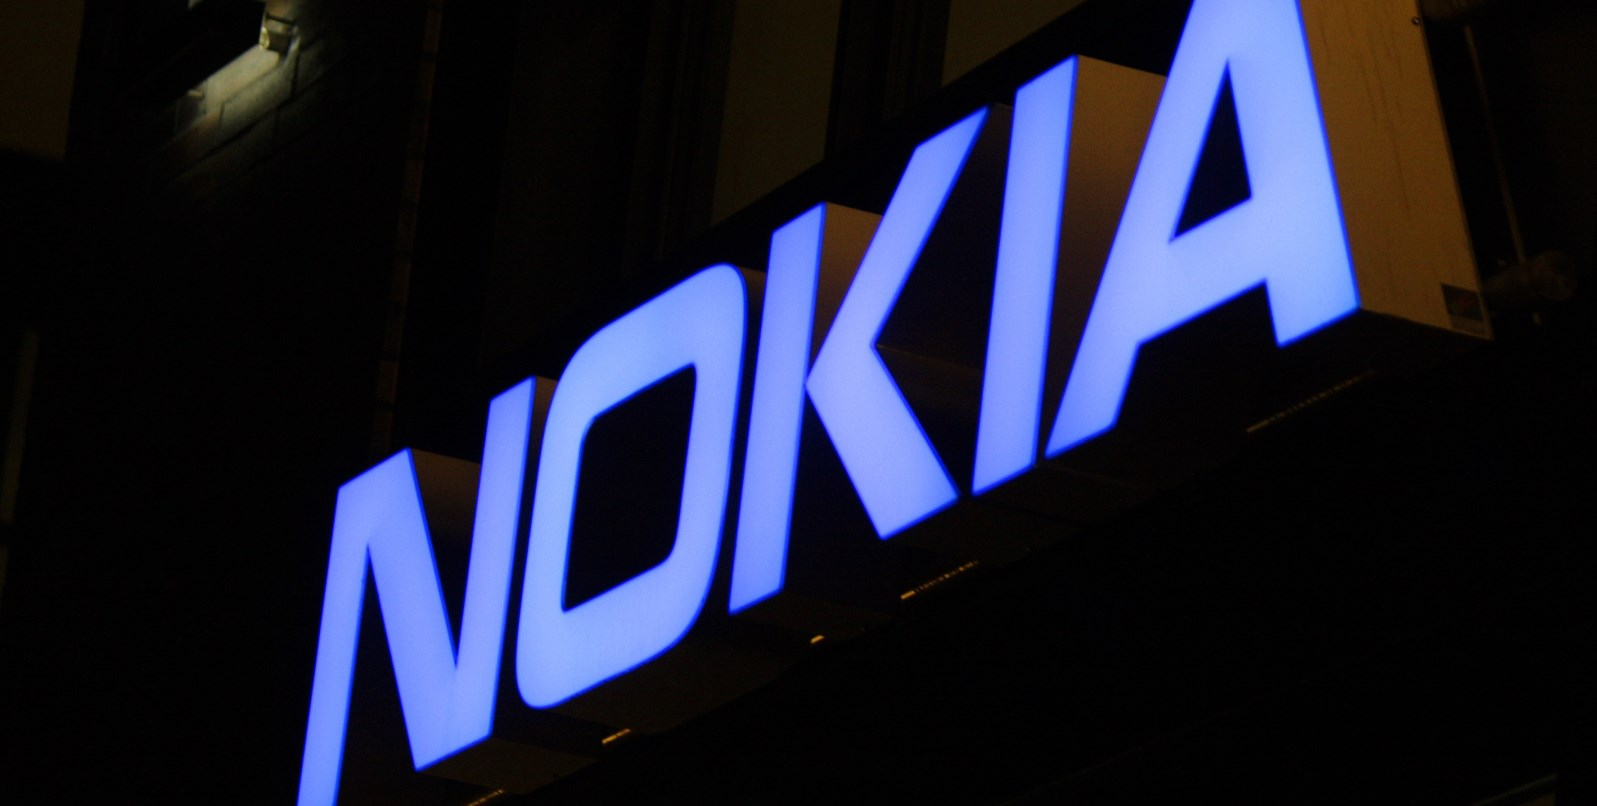 Nokia agrees to buy Alcatel-Lucent for $16.6 billion